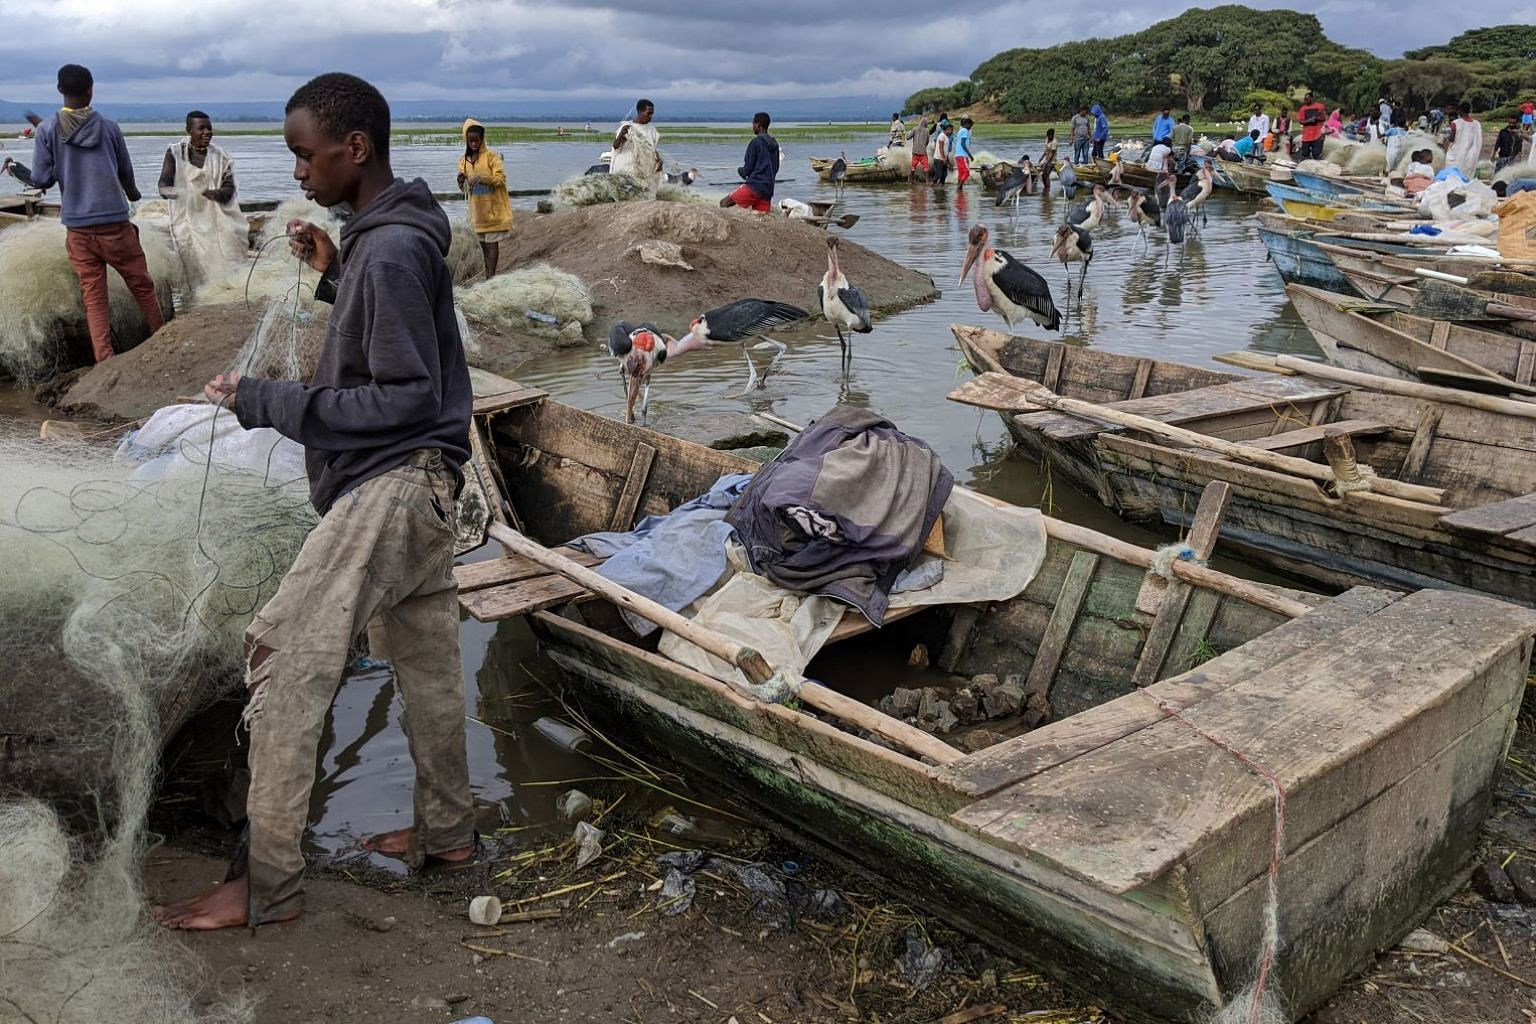 On the shore of Lake Hawassa, fishermen pull in their catch, untangle their nets and hawk their tilapia and catfish as marabou storks and pelicans lurk around.